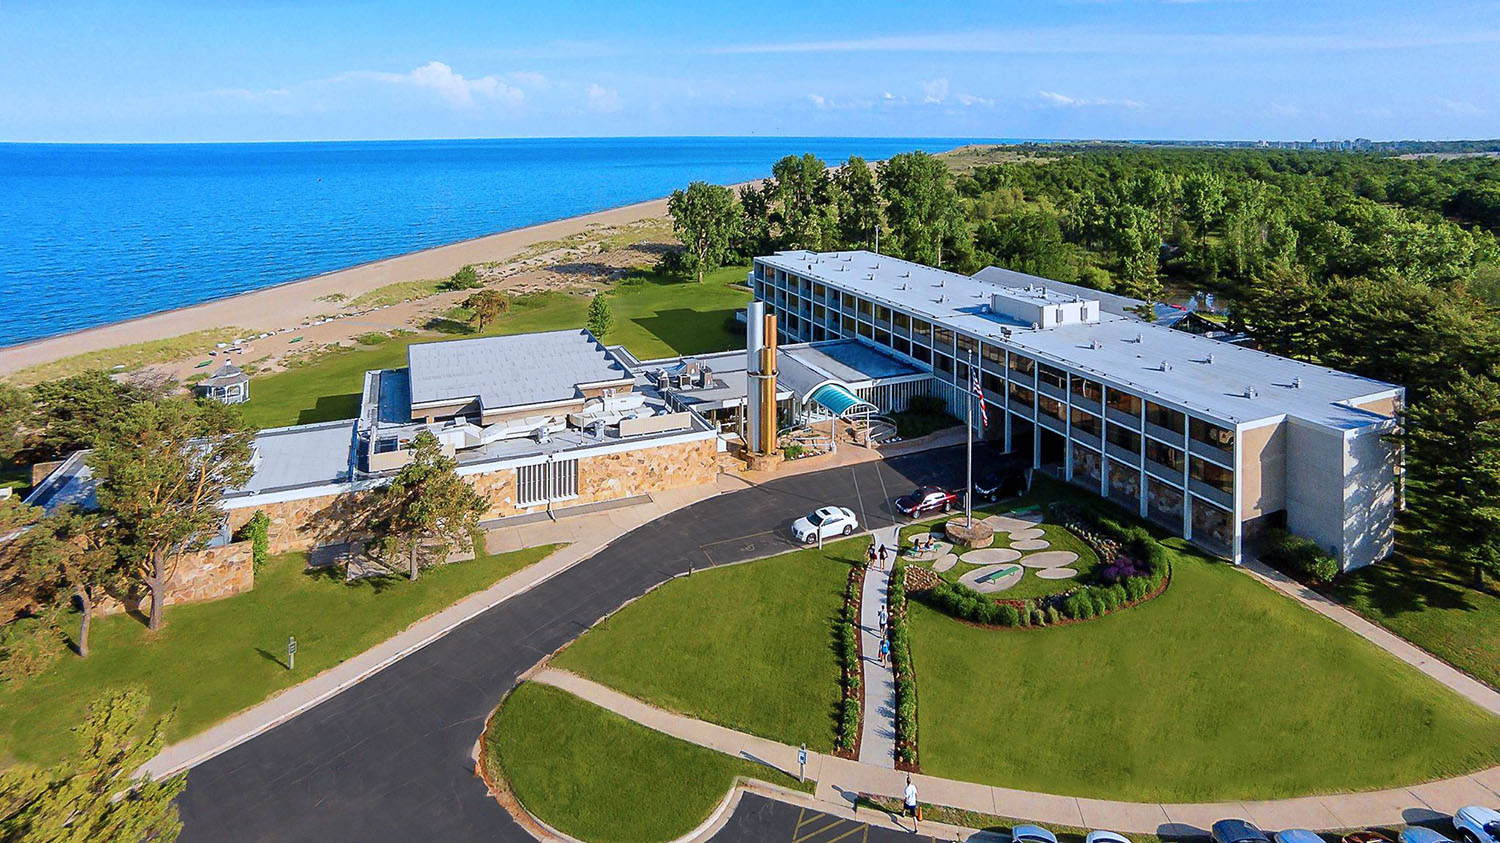 Illinois Beach Hotel